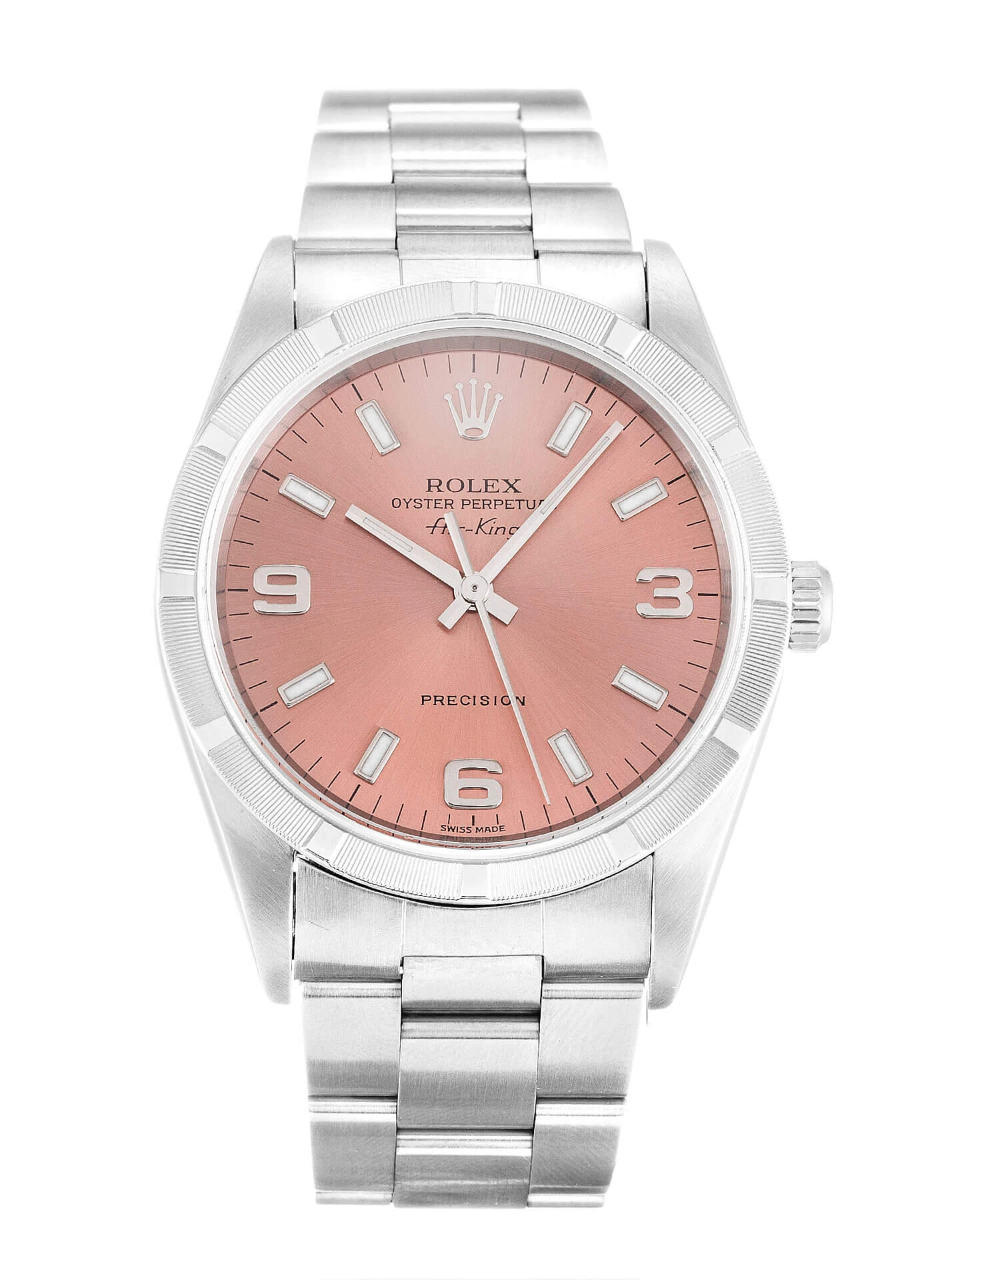 ROLEX AIRKING SALMON QUARTER ARABIC DIAL STAINLESS STEEL